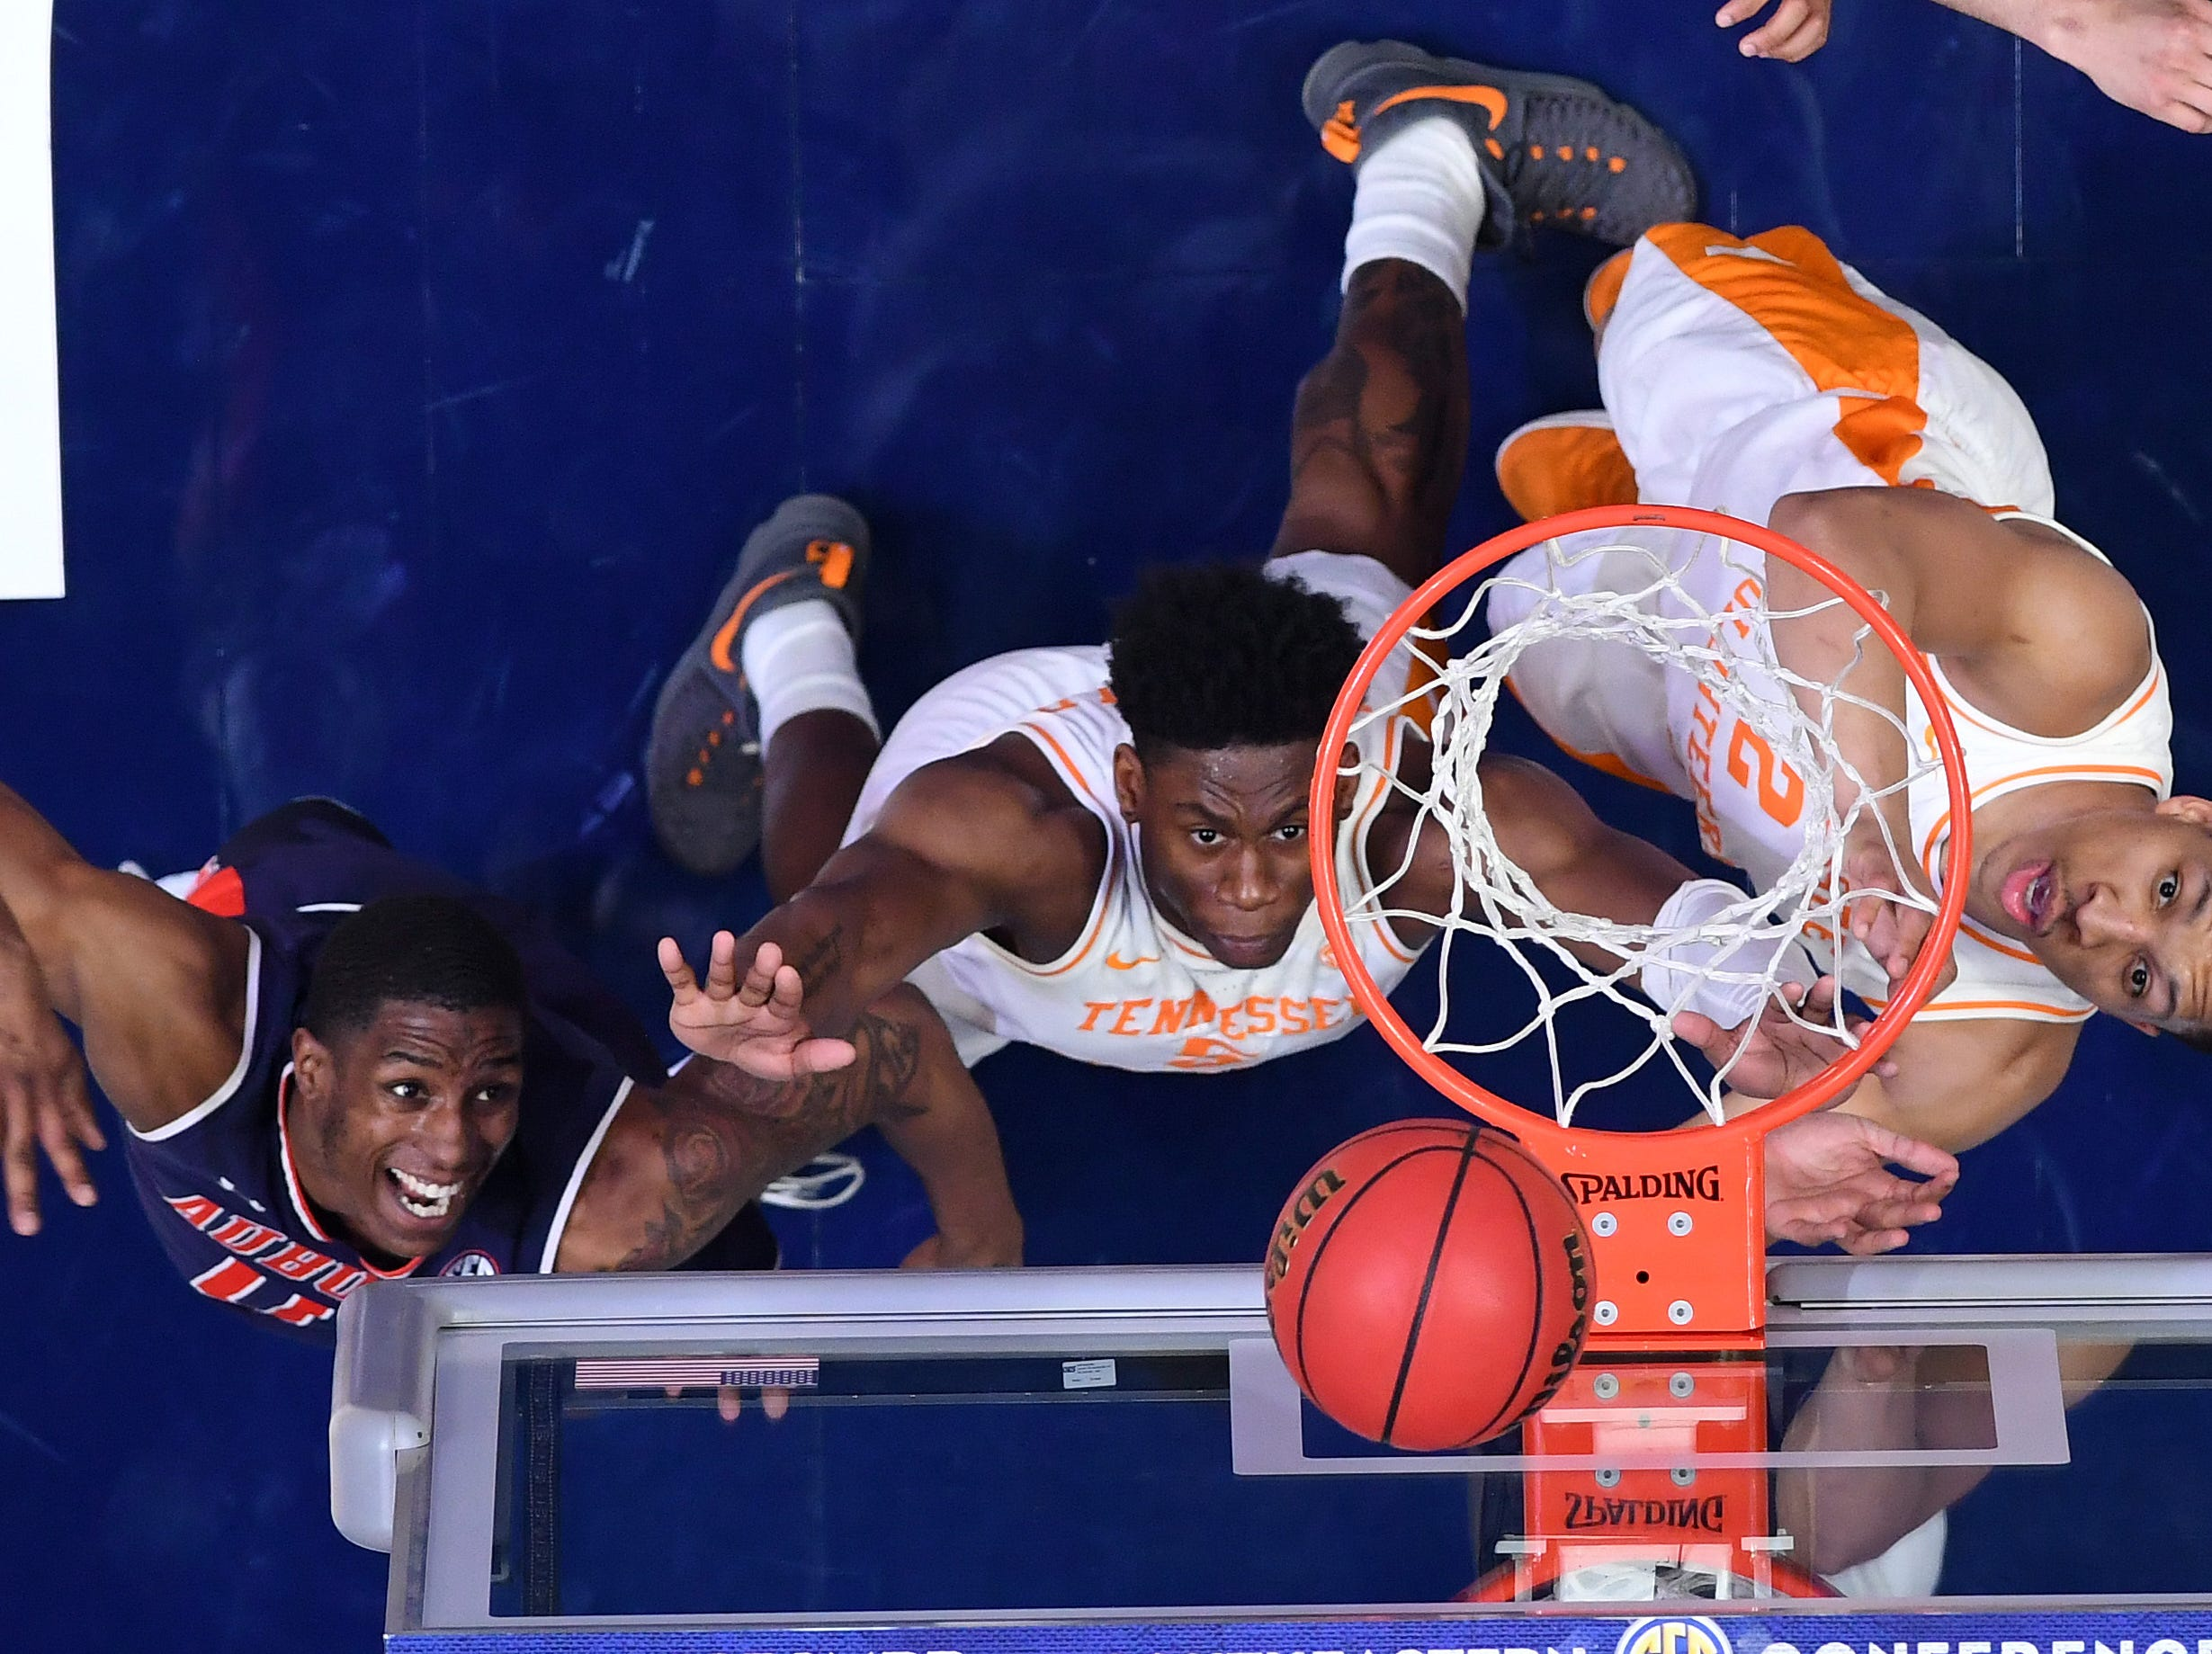 Mar 17, 2019; Nashville, TN, USA; Tennessee Volunteers guard Admiral Schofield (5) Tennessee Volunteers forward Grant Williams (2) watch a shot by Auburn Tigers forward Horace Spencer (0) in the SEC conference tournament championship game at Bridgestone Arena. Mandatory Credit: Christopher Hanewinckel-USA TODAY Sports